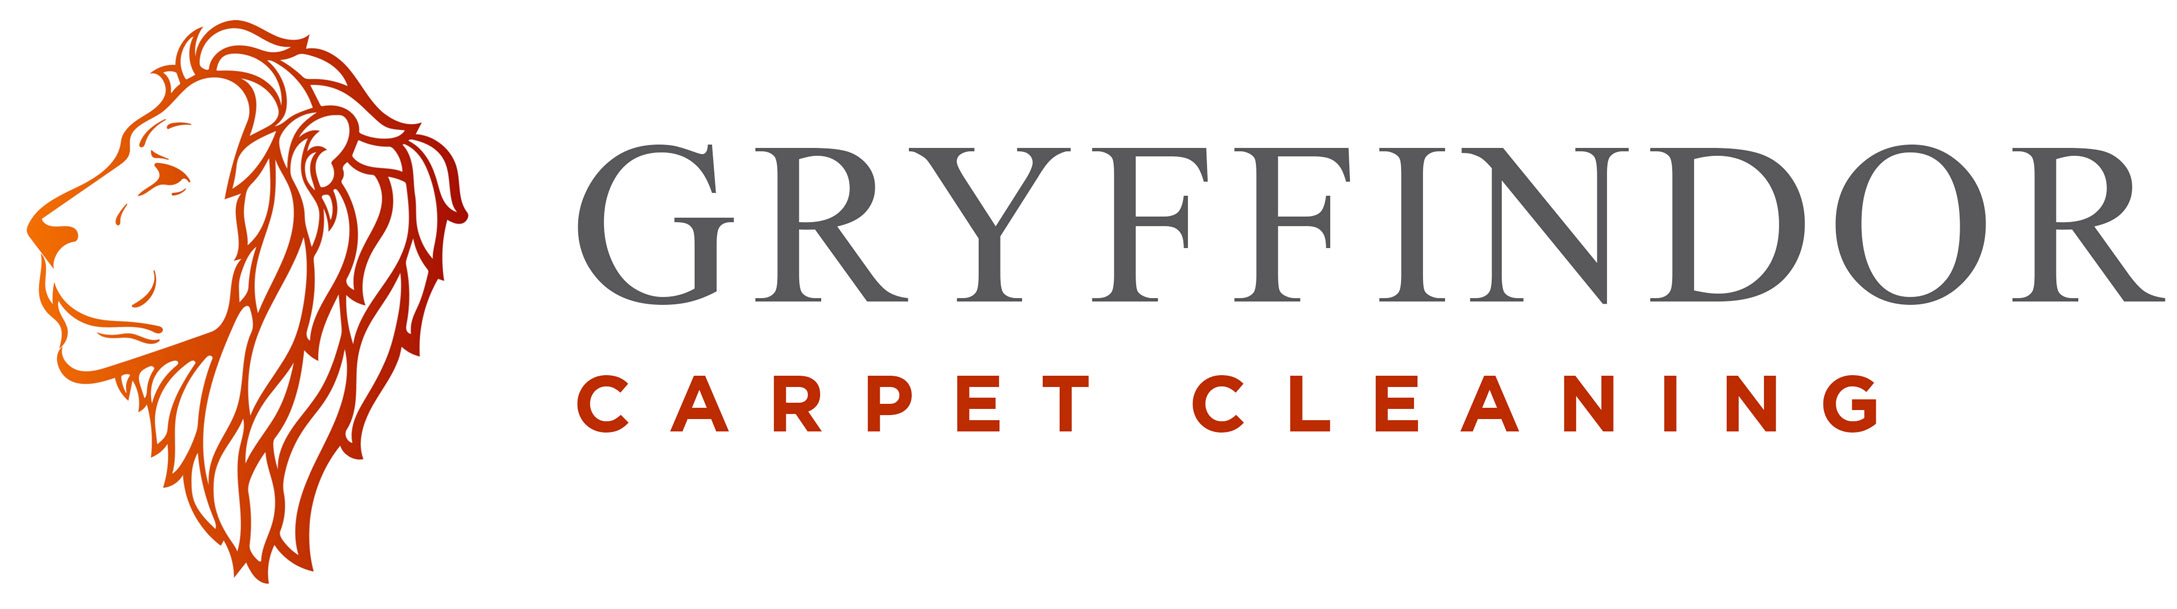 Gryffindor Carpet Cleaning